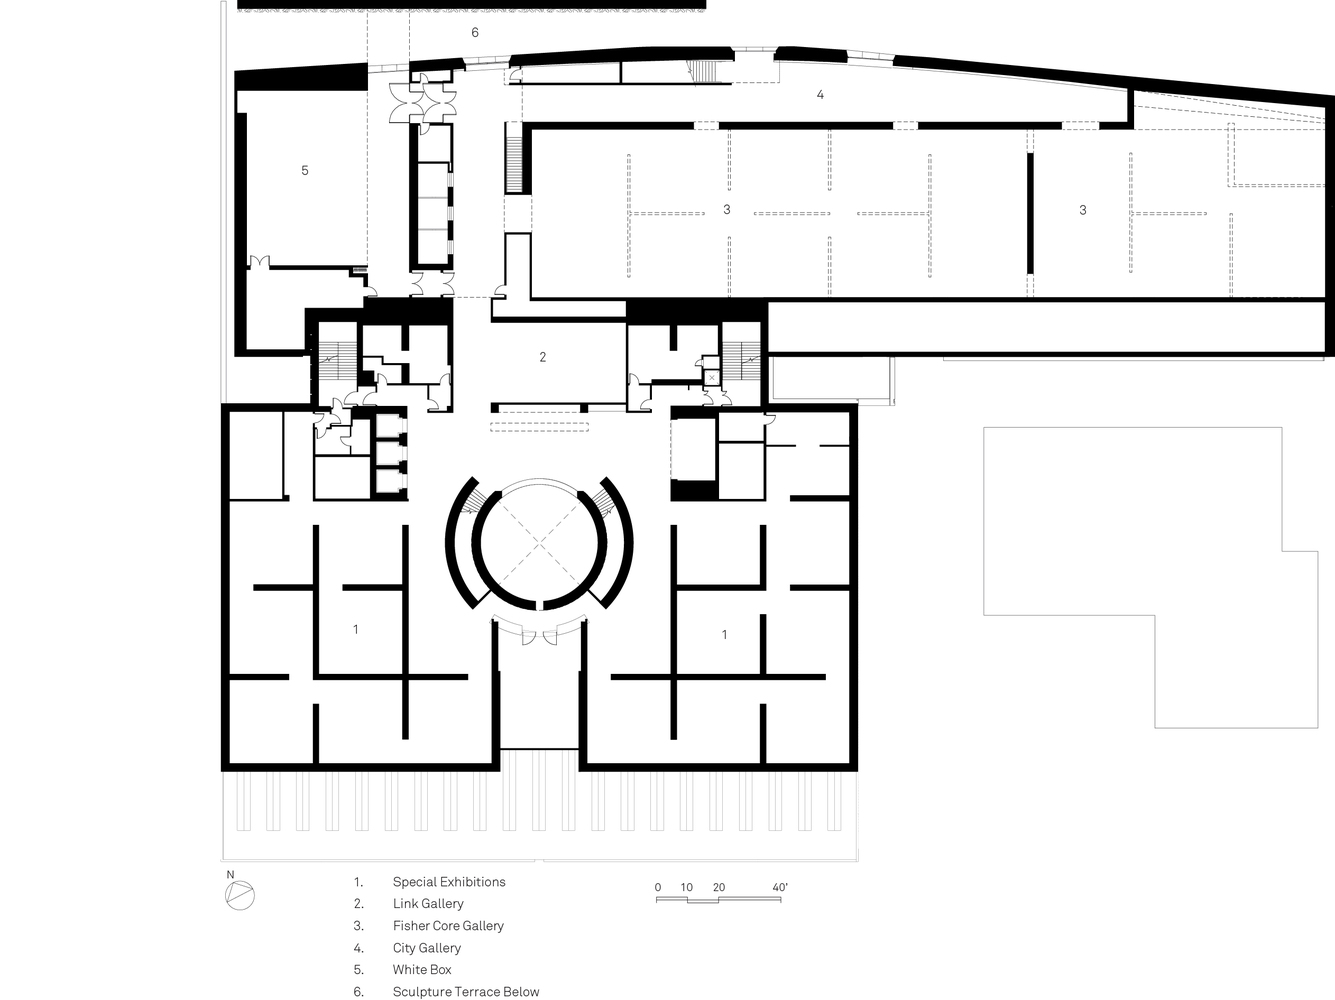 SFMOMA_Plan_Level_4